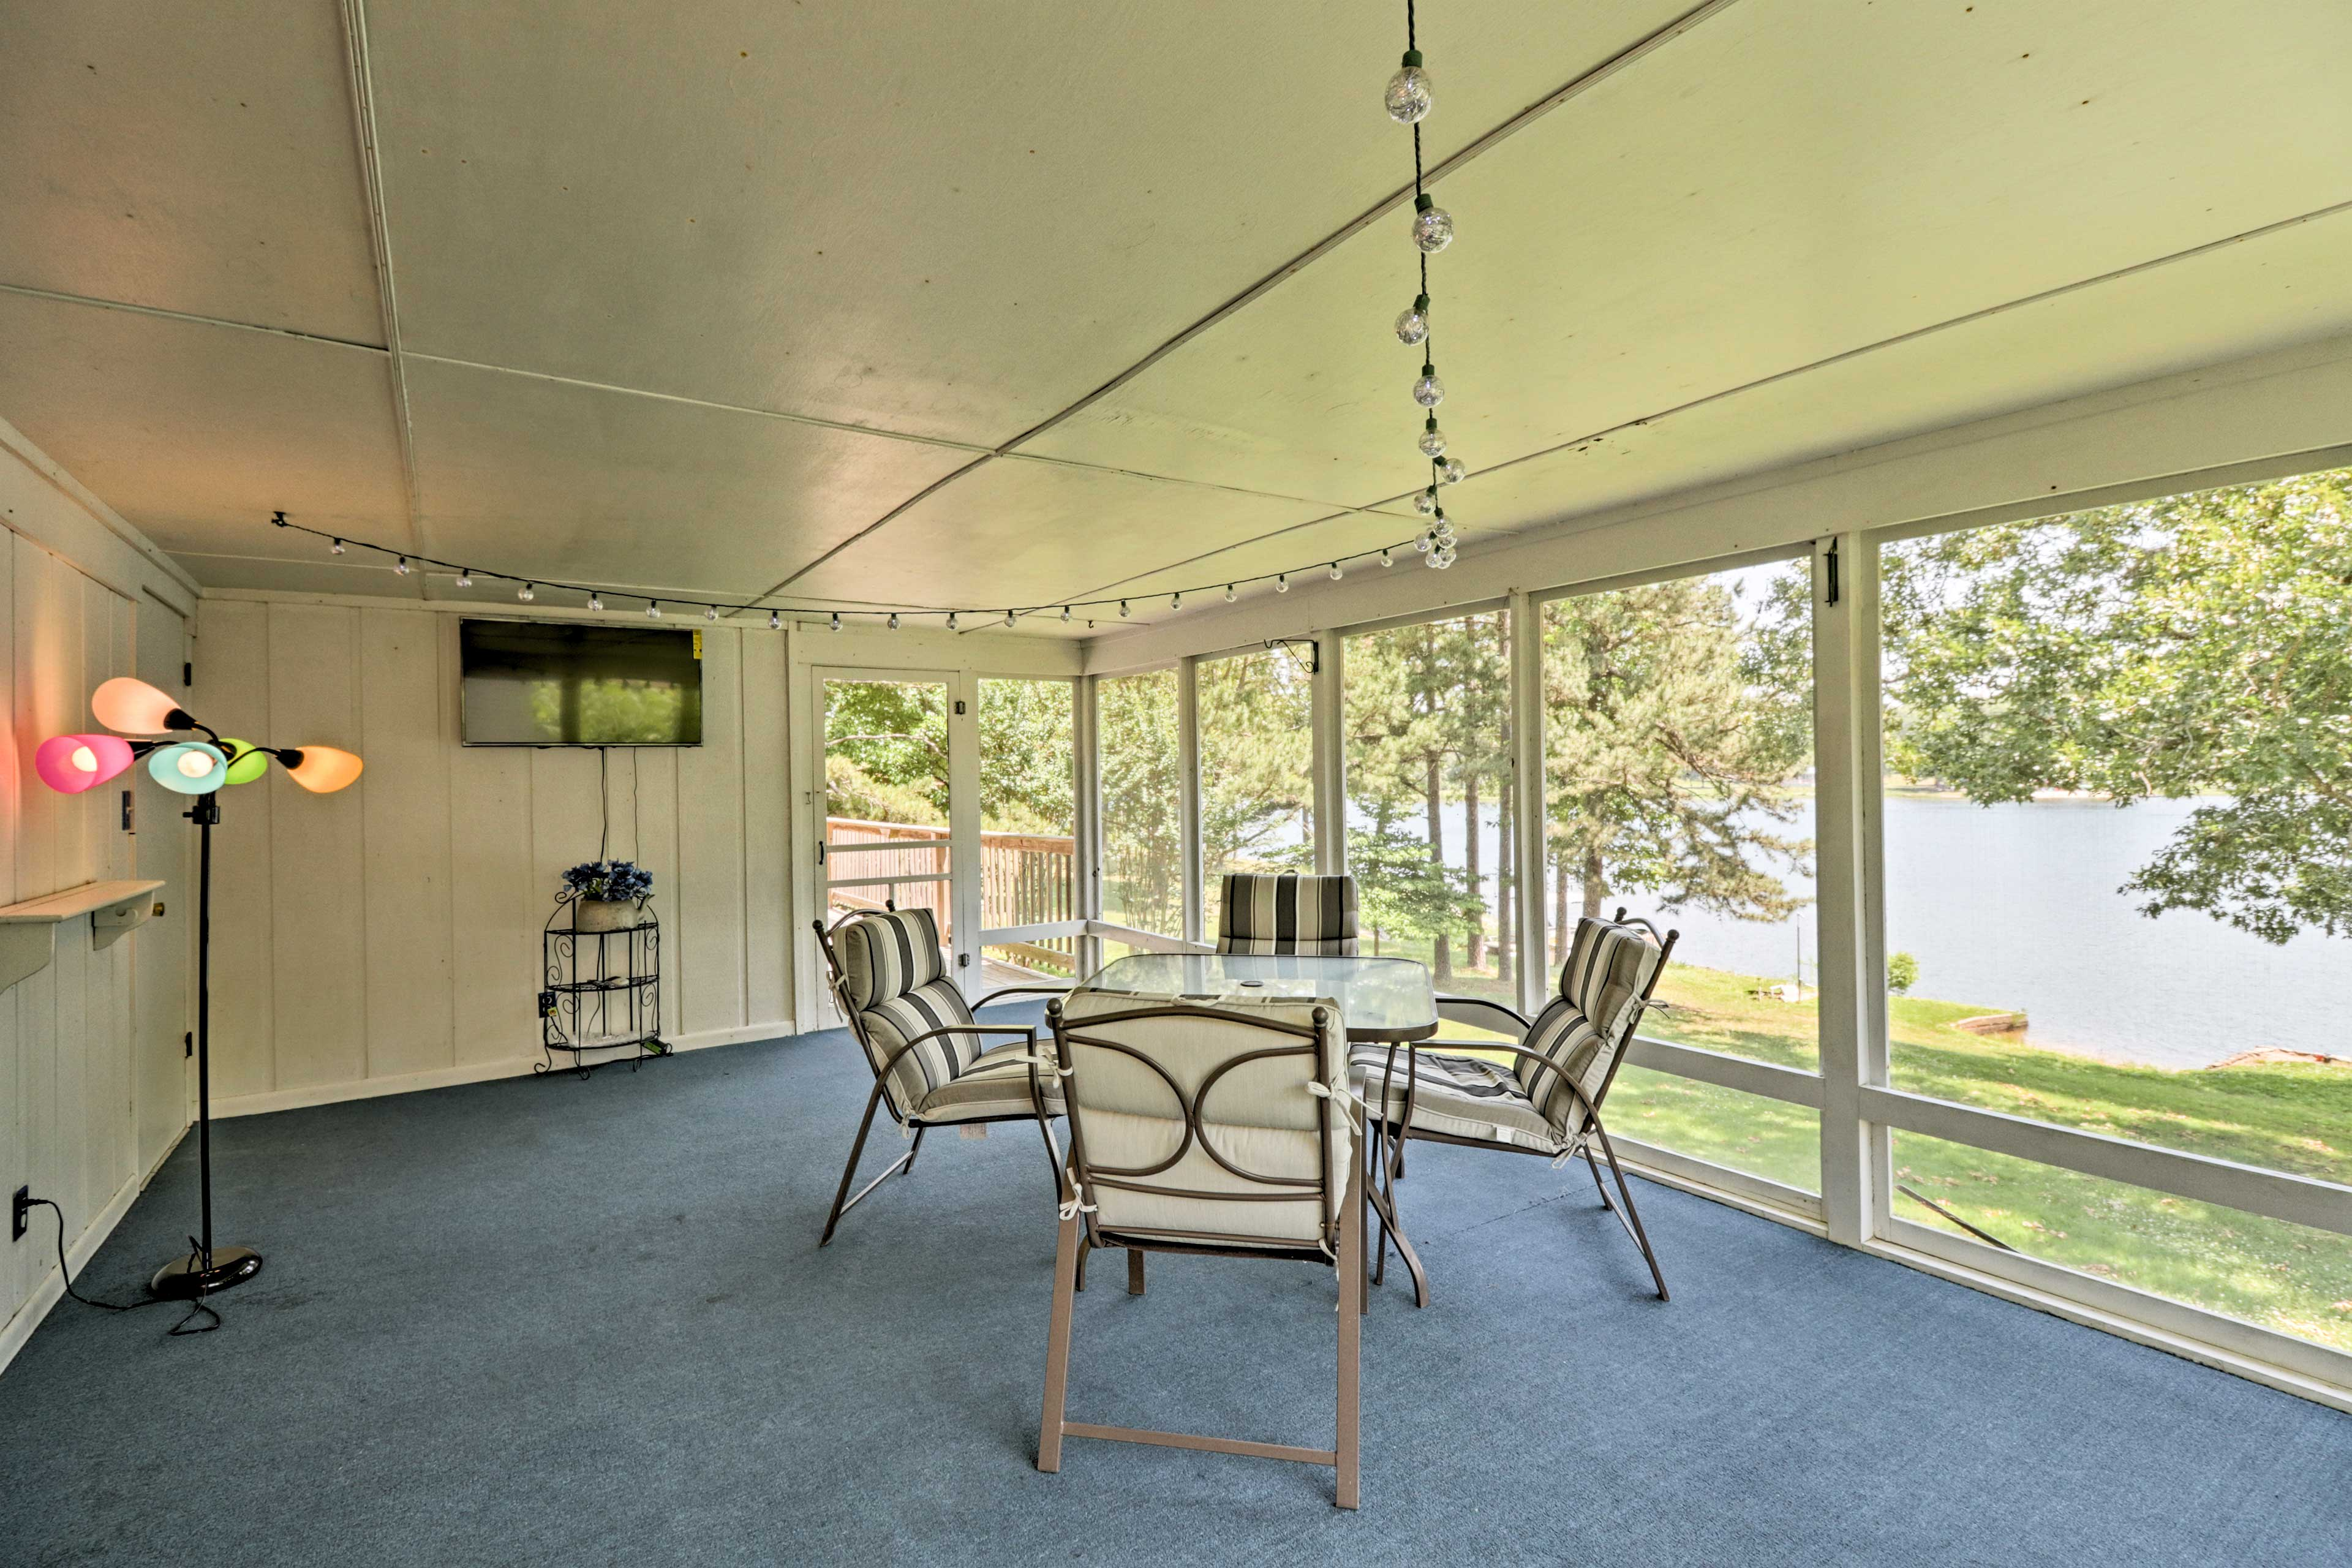 Set out snacks and watch the big game from the screened porch!